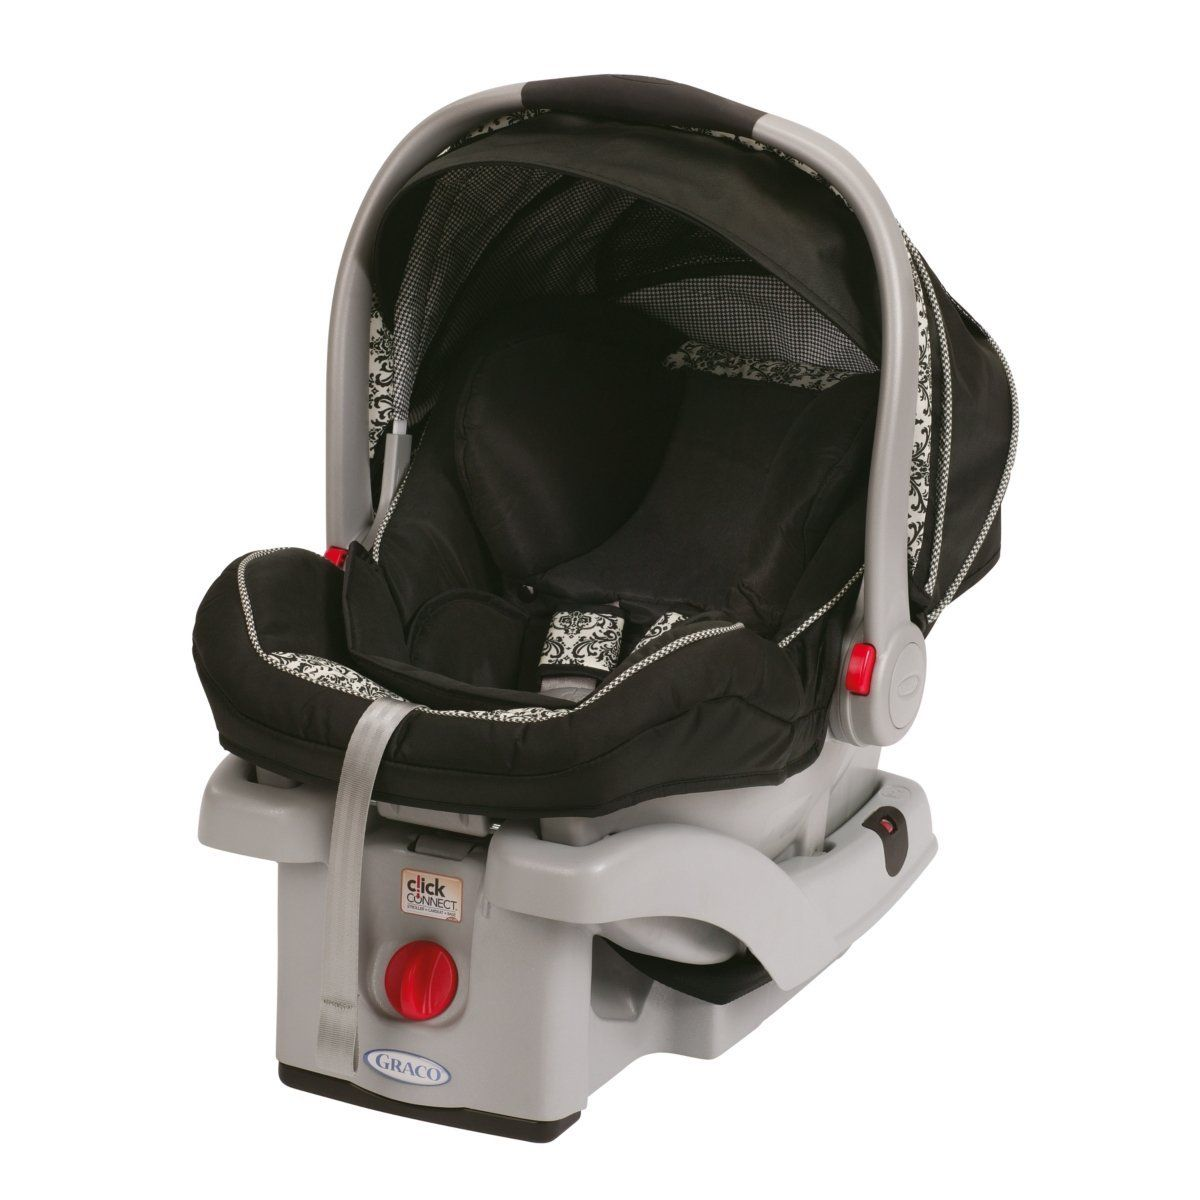 Good Infant Car Seat Graco SnugRide Click Connect 40 Review